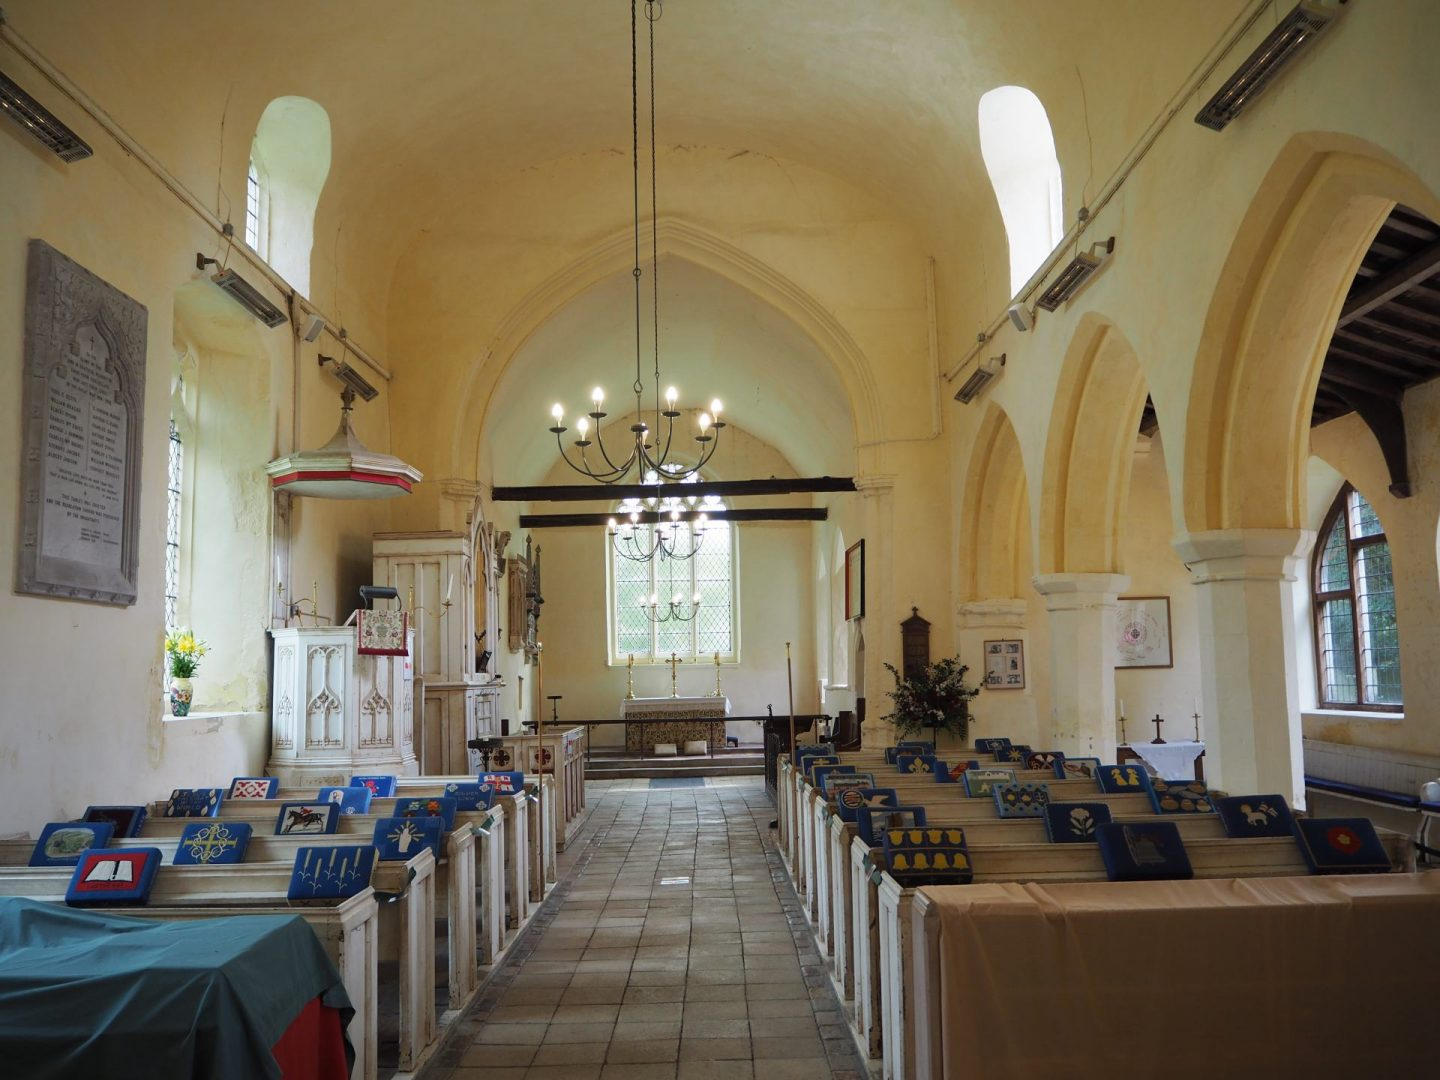 Looking east into the chancel of St Andrew's church, Helions Bumpstead